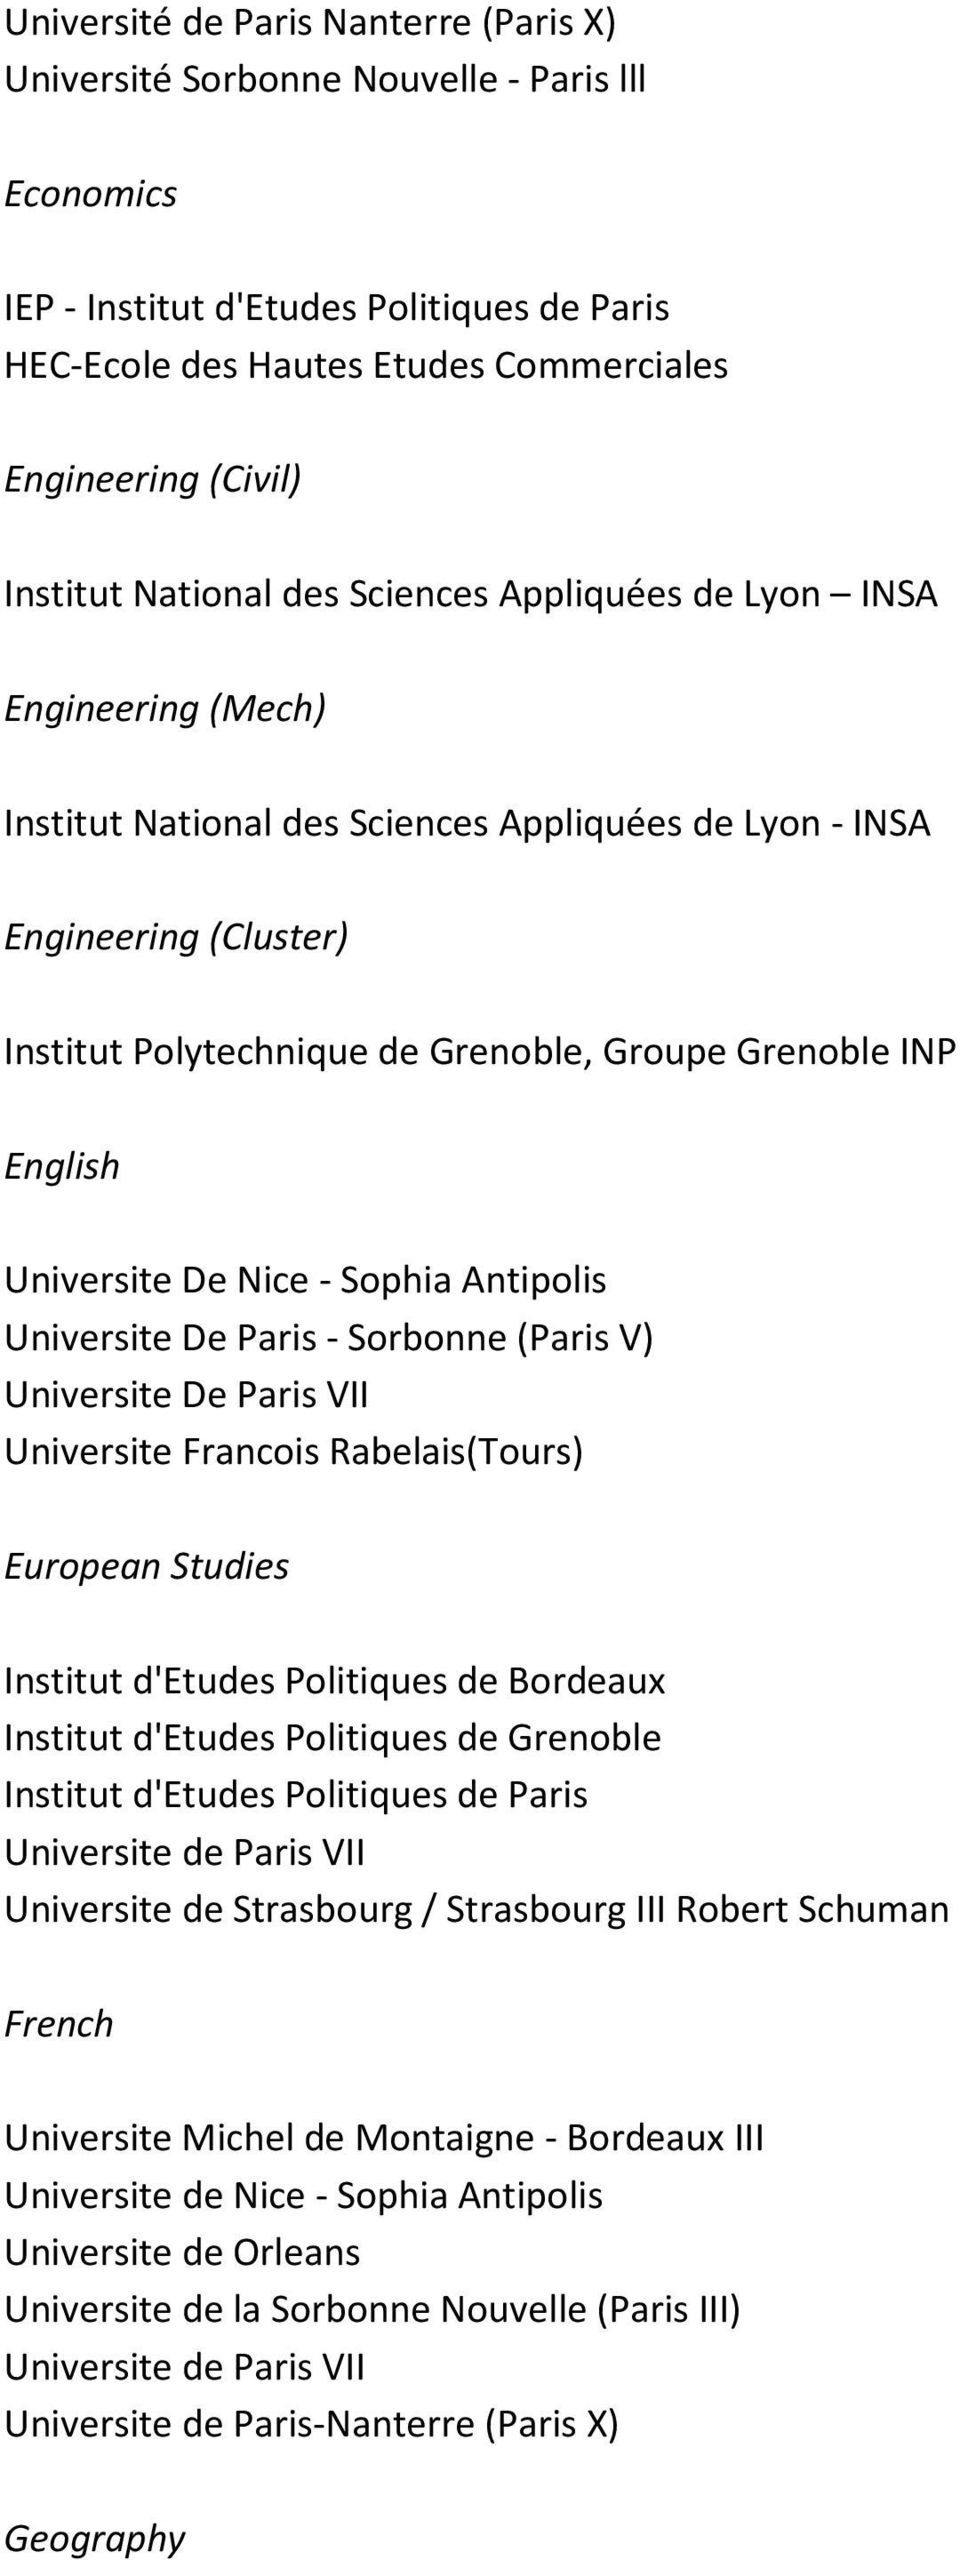 Grenoble INP English Universite De Nice - Sophia Antipolis Universite De Paris - Sorbonne (Paris V) Universite De Paris VII Universite Francois Rabelais(Tours) European Studies Institut d'etudes